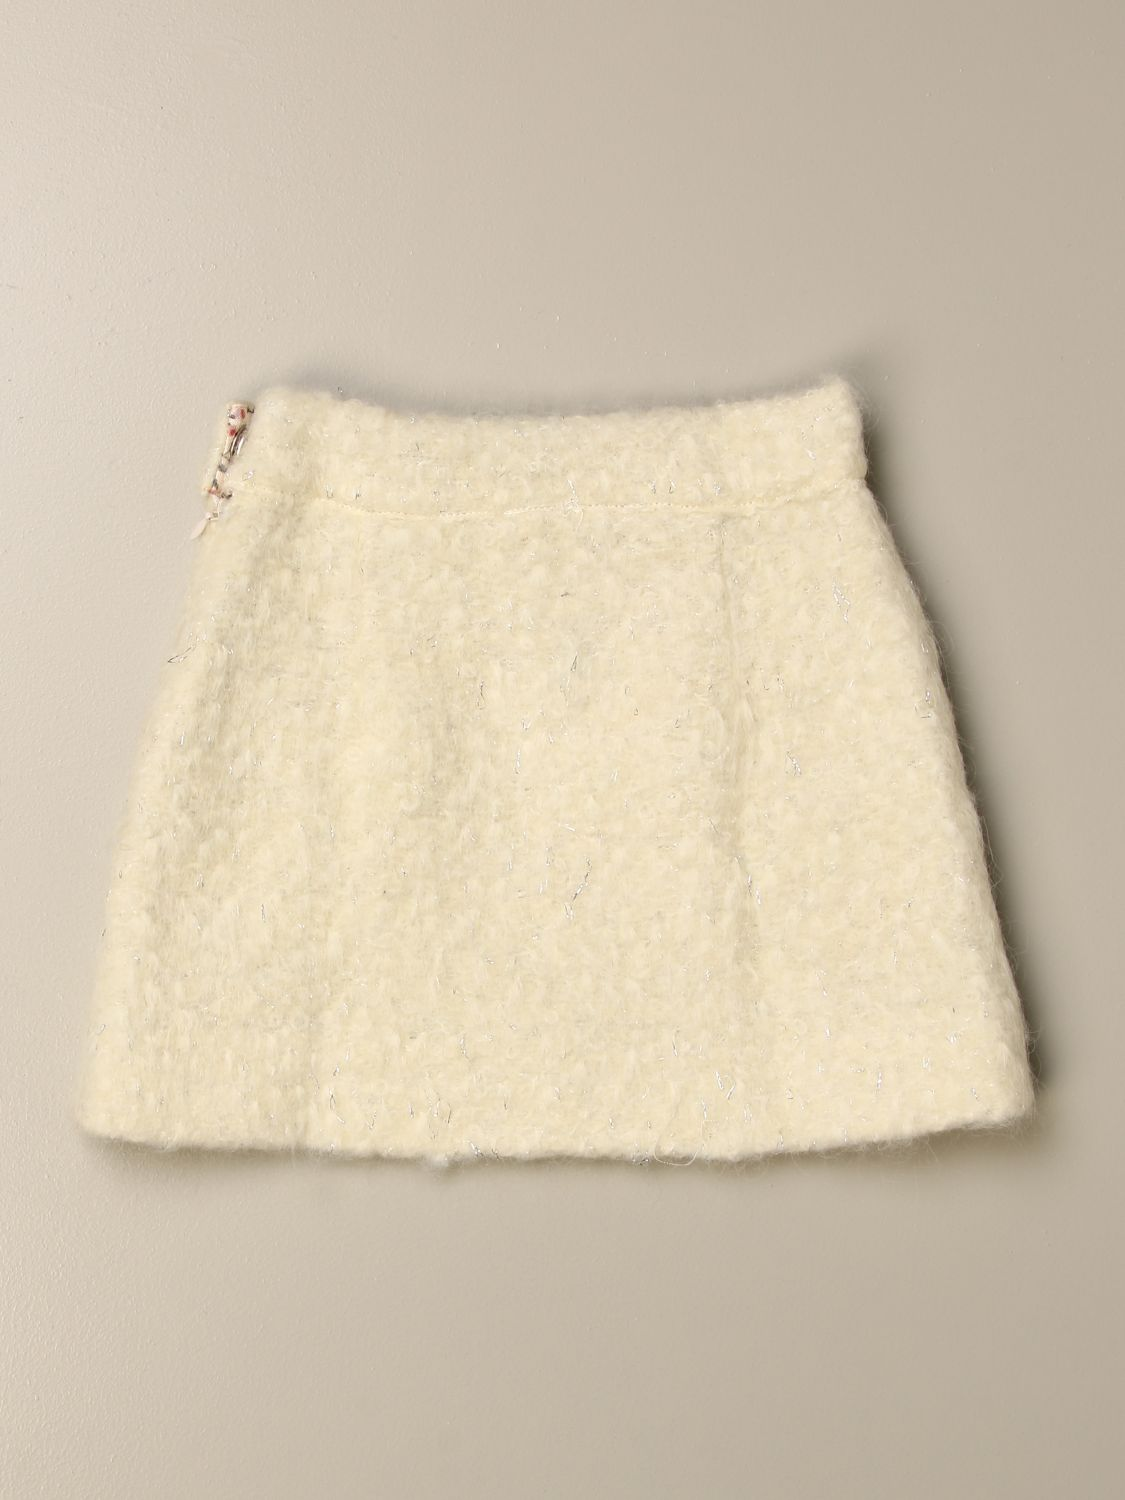 Skirt Caffe' D'orzo: Skirt kids Caffe' D'orzo milk 2